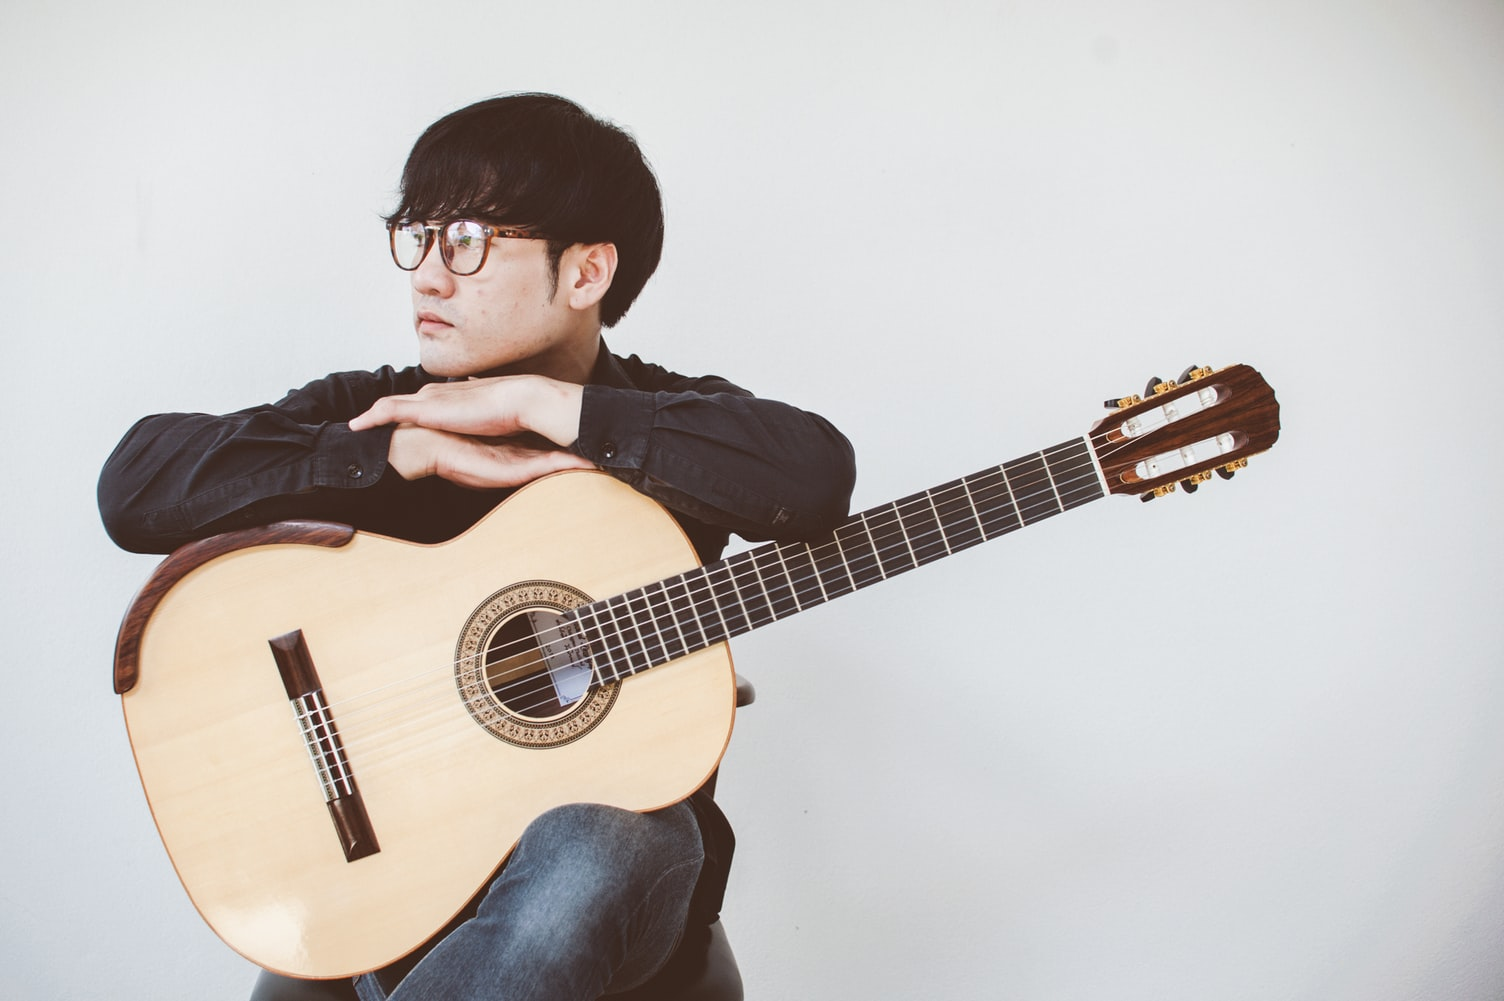 Man wearing a glasses is holding a guitar